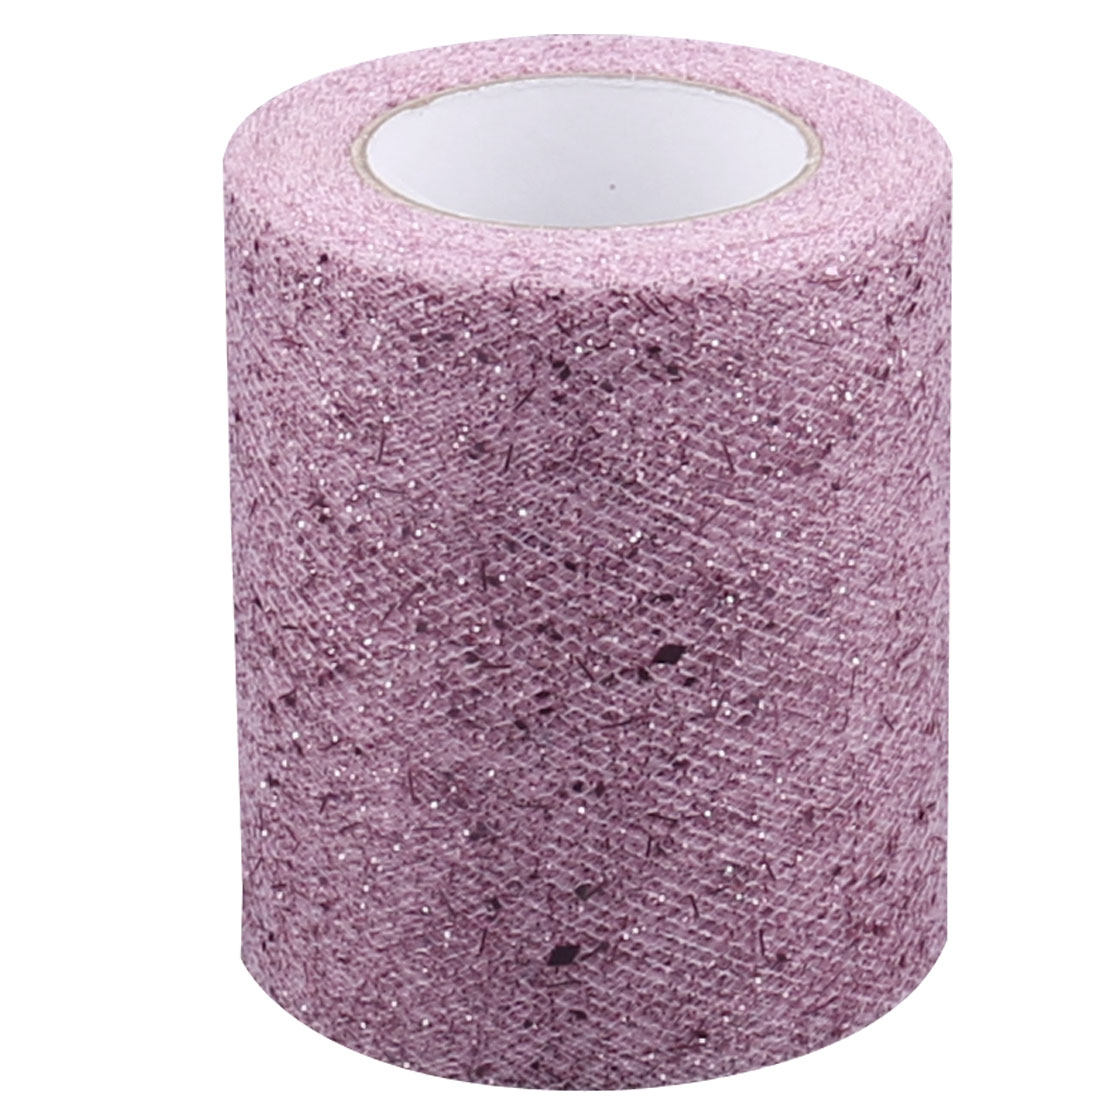 Wedding Banquet Party DIY Tutu Chair Glitter Sparkling Tulle Spool Pink 25 Yards